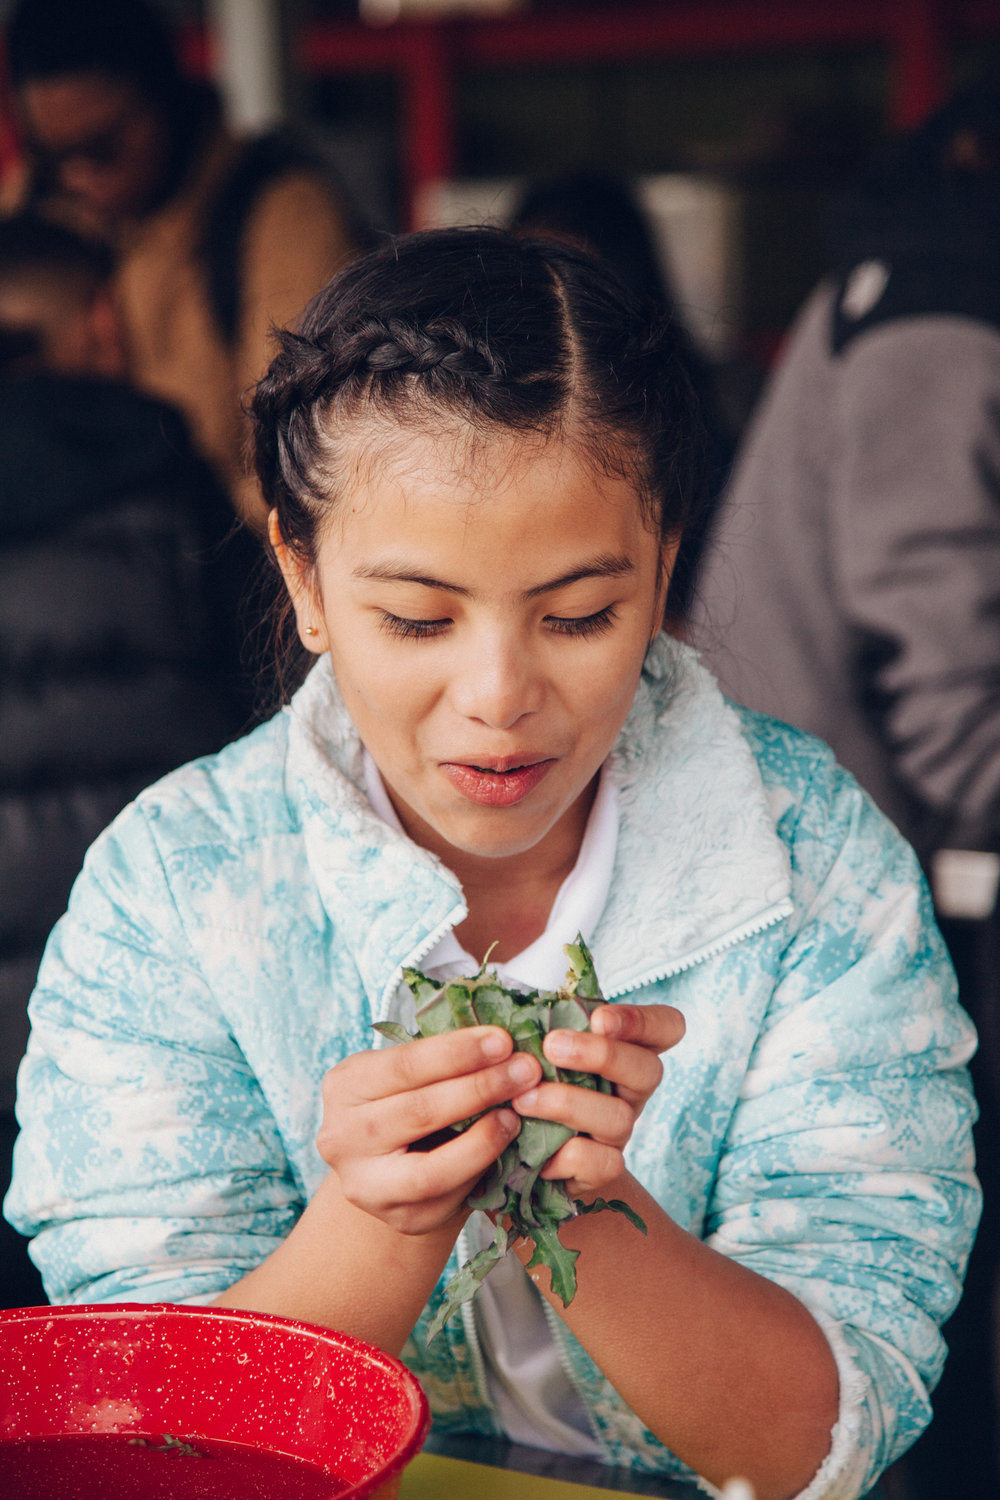 Provided nearly 12,000 students the opportunity to learn firsthand where their food comes from and why it matters through our farm field trip program at SMC Farm -